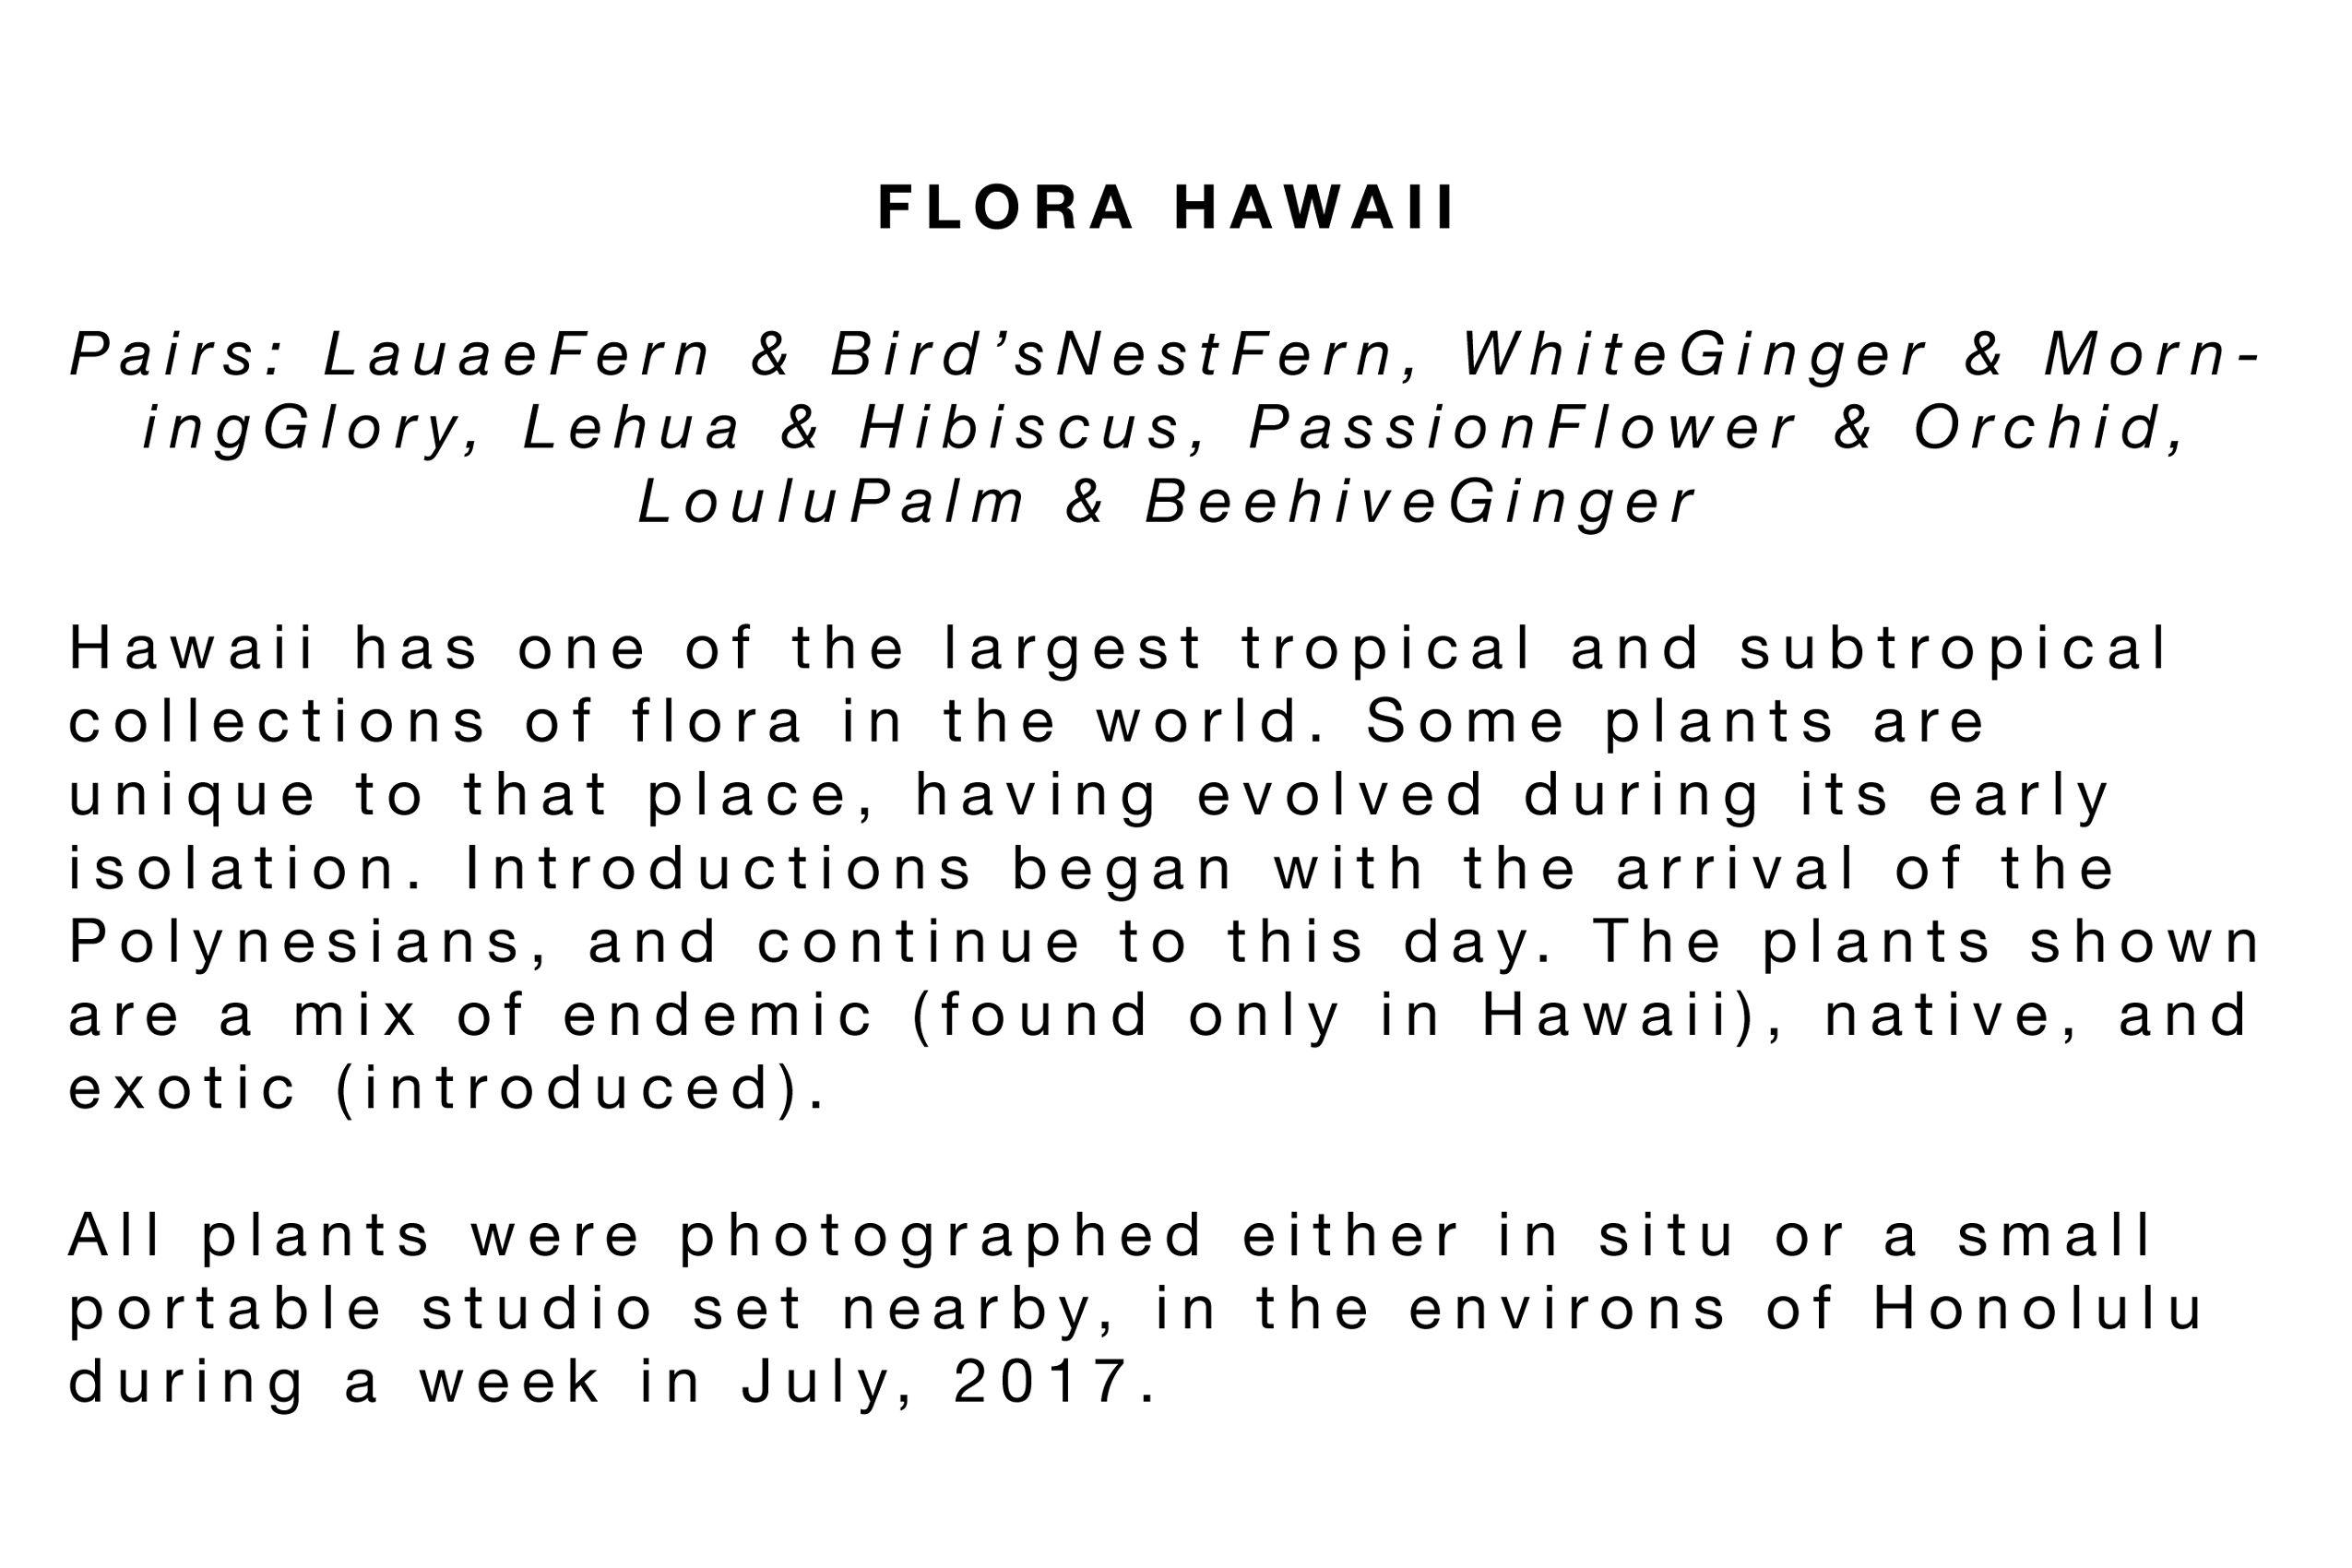 Flora Hawaii Statement